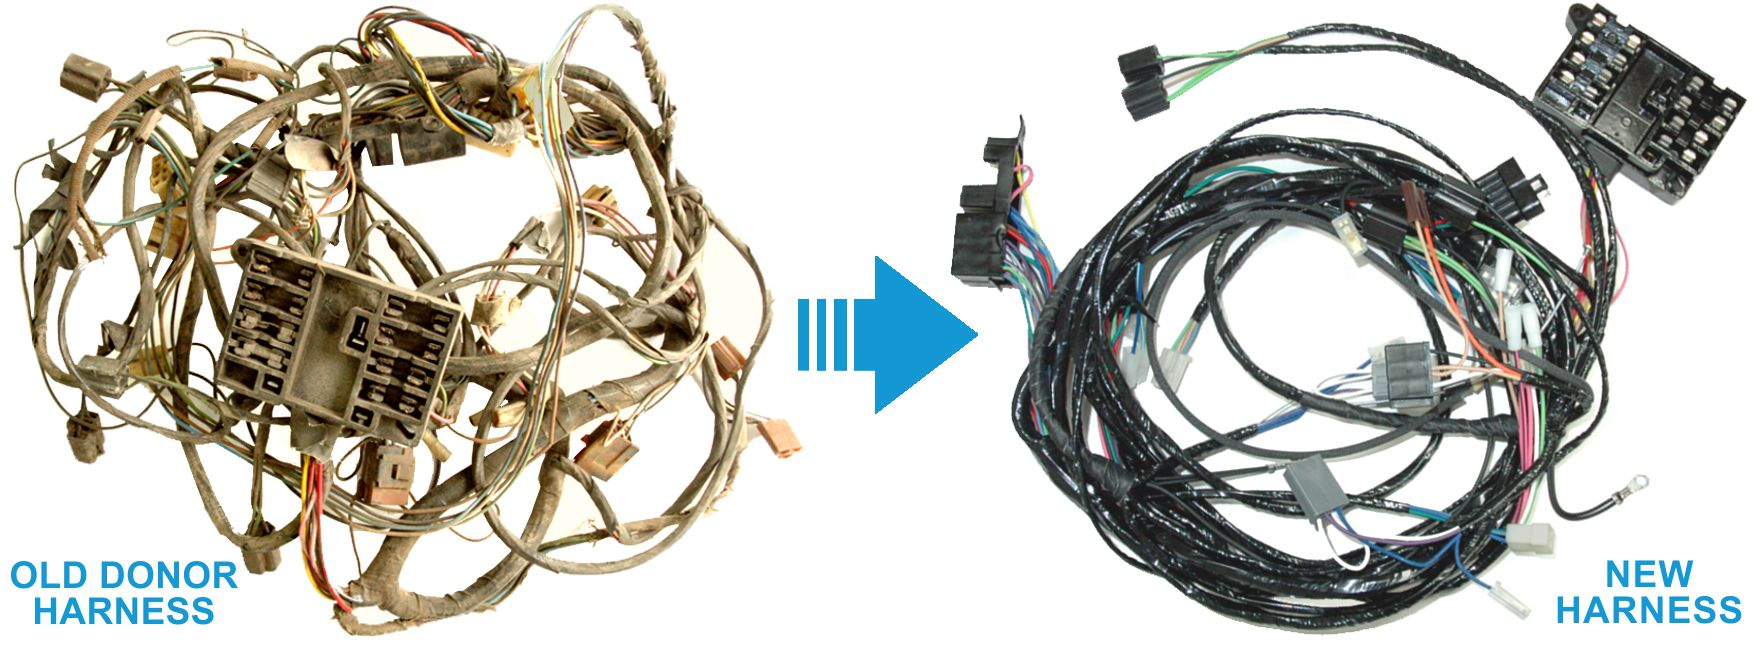 Exact OEM Reproduction Wiring Harnesses for Clic & Muscle Cars on pontiac g6 stereo installation, pontiac body control module, 2006 pontiac g6 headlight harness, pontiac transmission parts, pontiac brake lines, pontiac starter wiring, 2000 pontiac bonneville stereo wire harness, pontiac engine compartment, pontiac fuse panel diagram, pontiac seats,